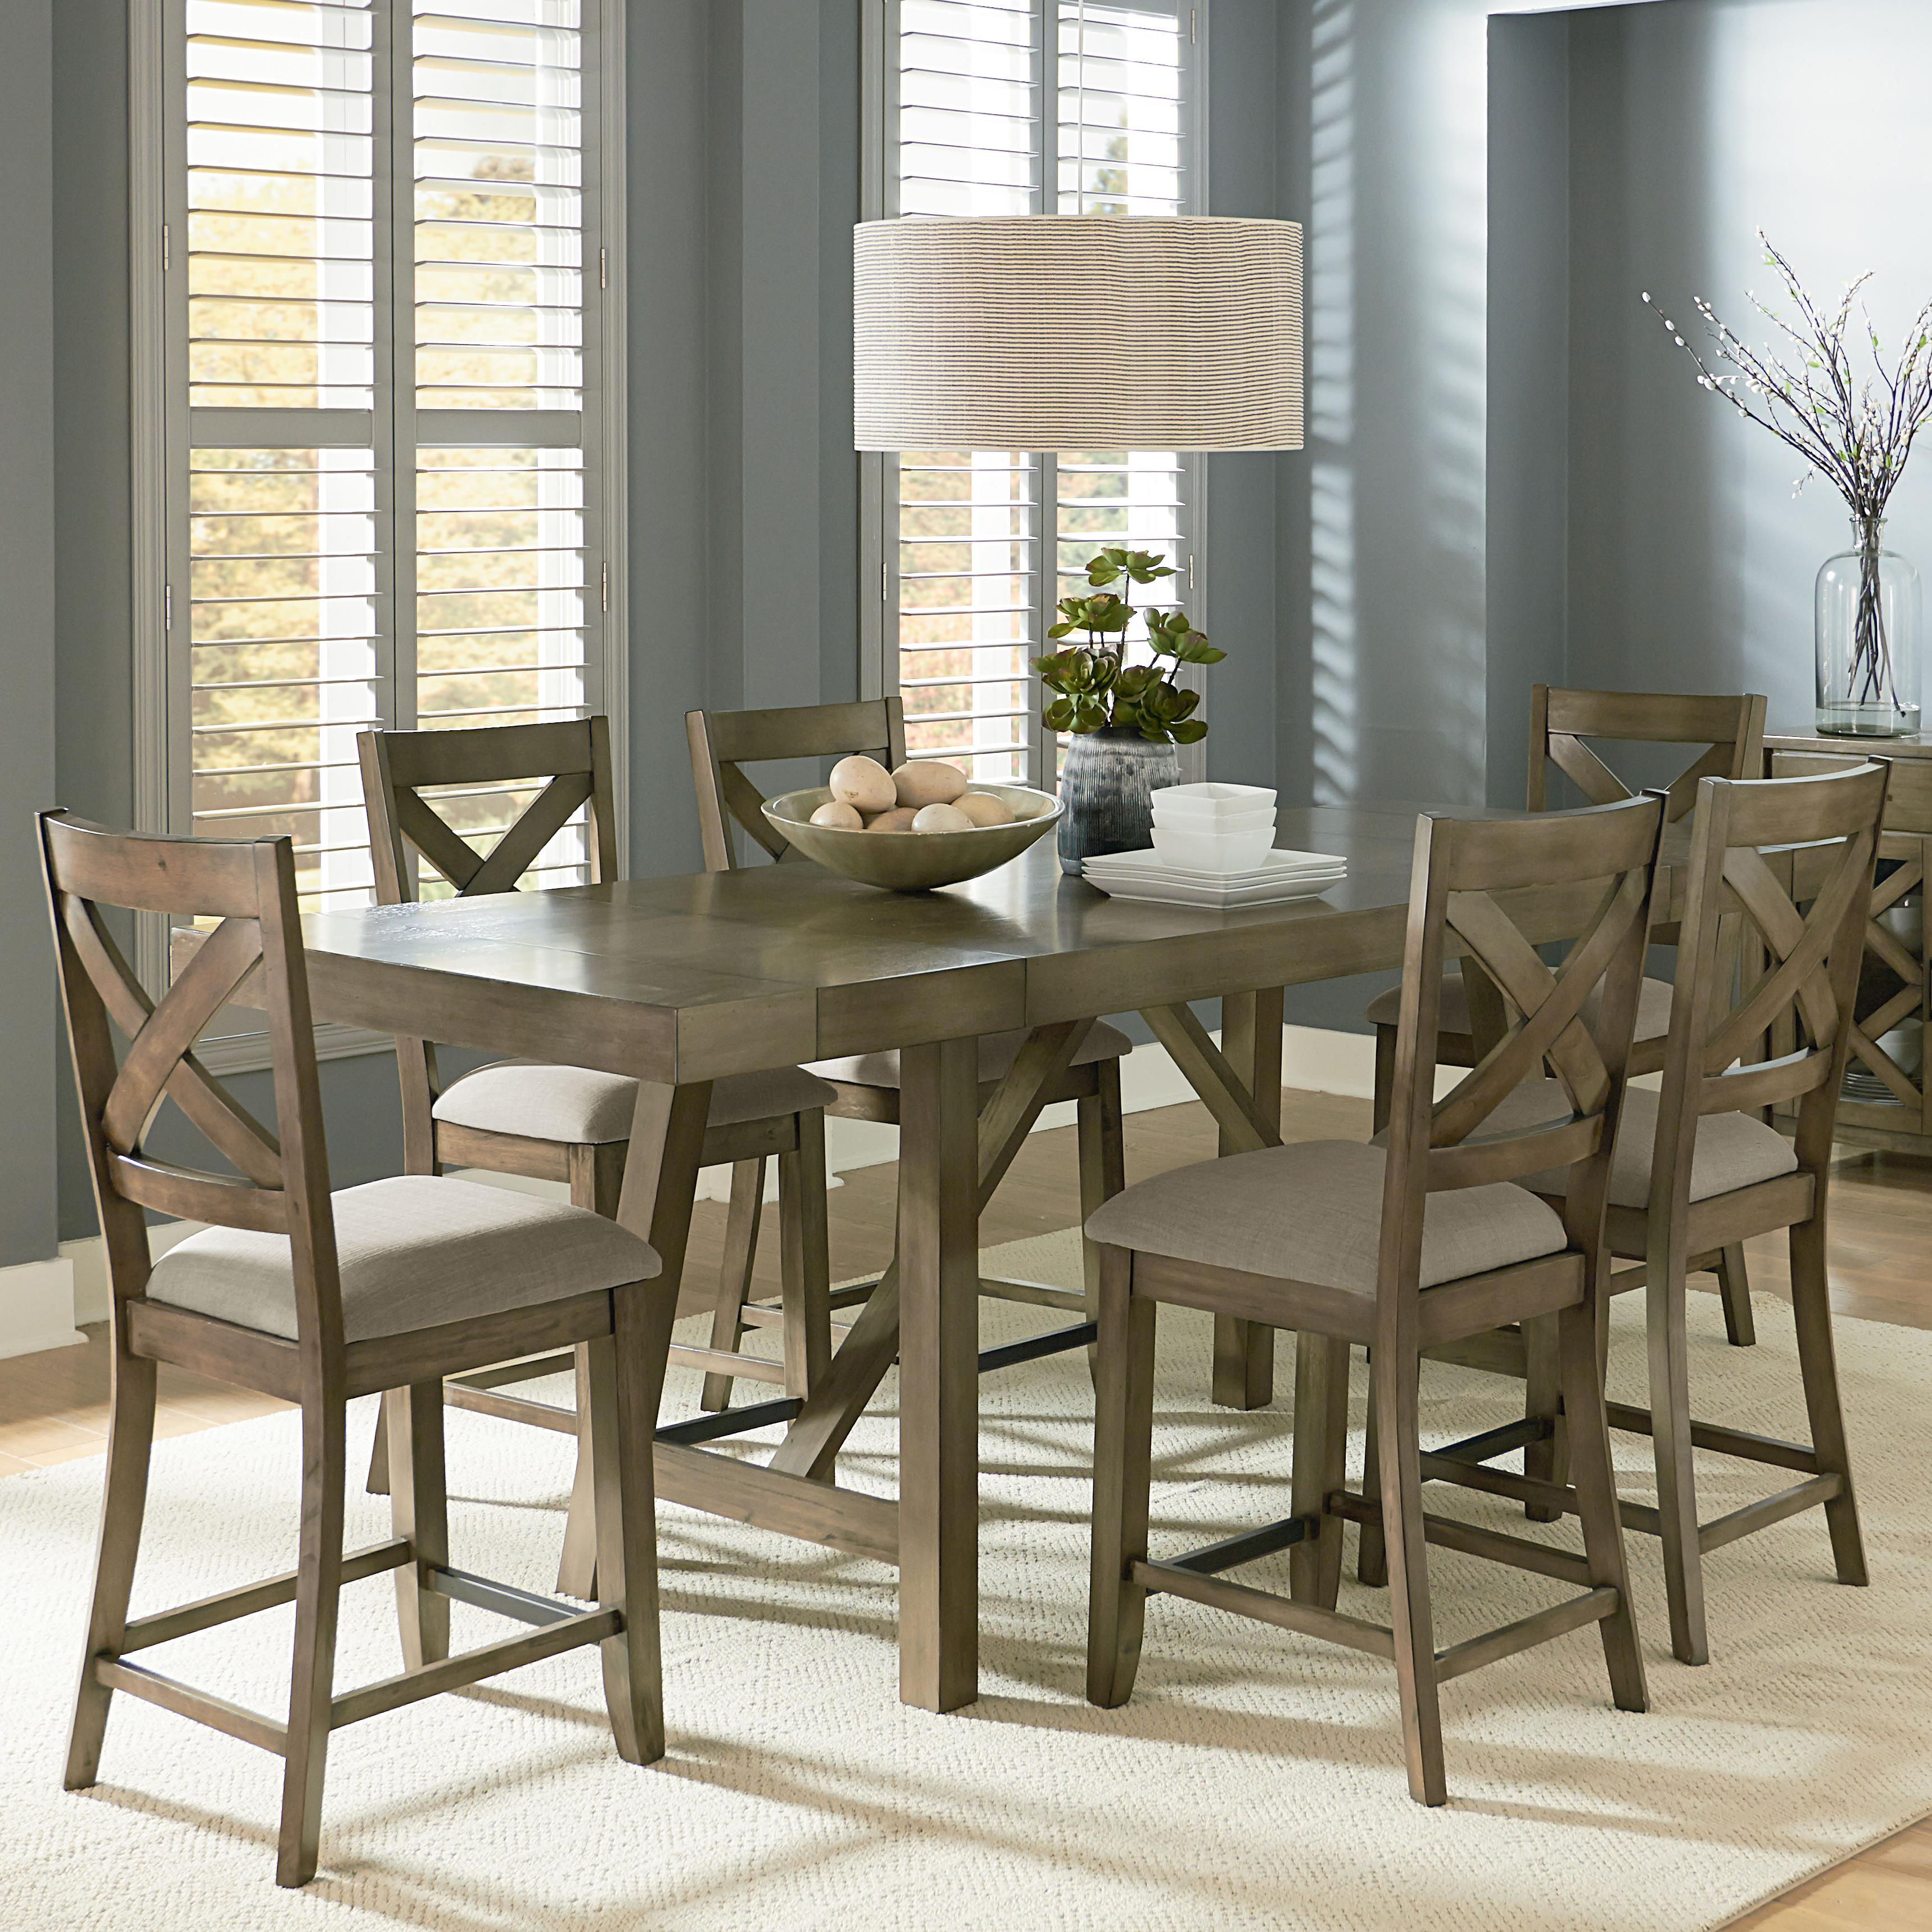 counter height kitchen chairs Standard Furniture Omaha Grey Trestle Table Dining Set Item Number